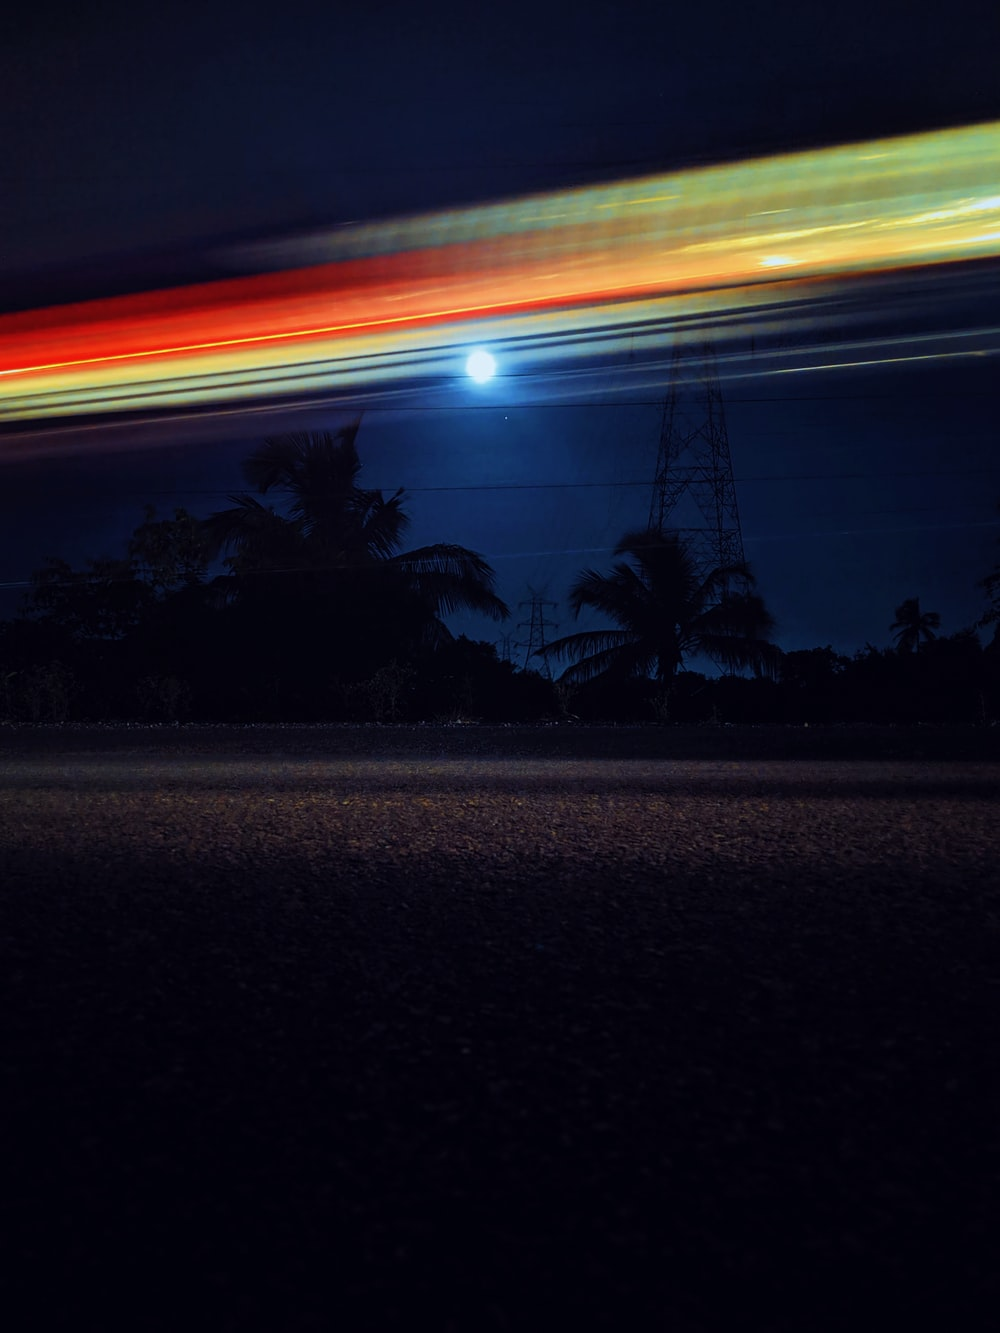 time-lapse photography of road beside trees and transmission tower